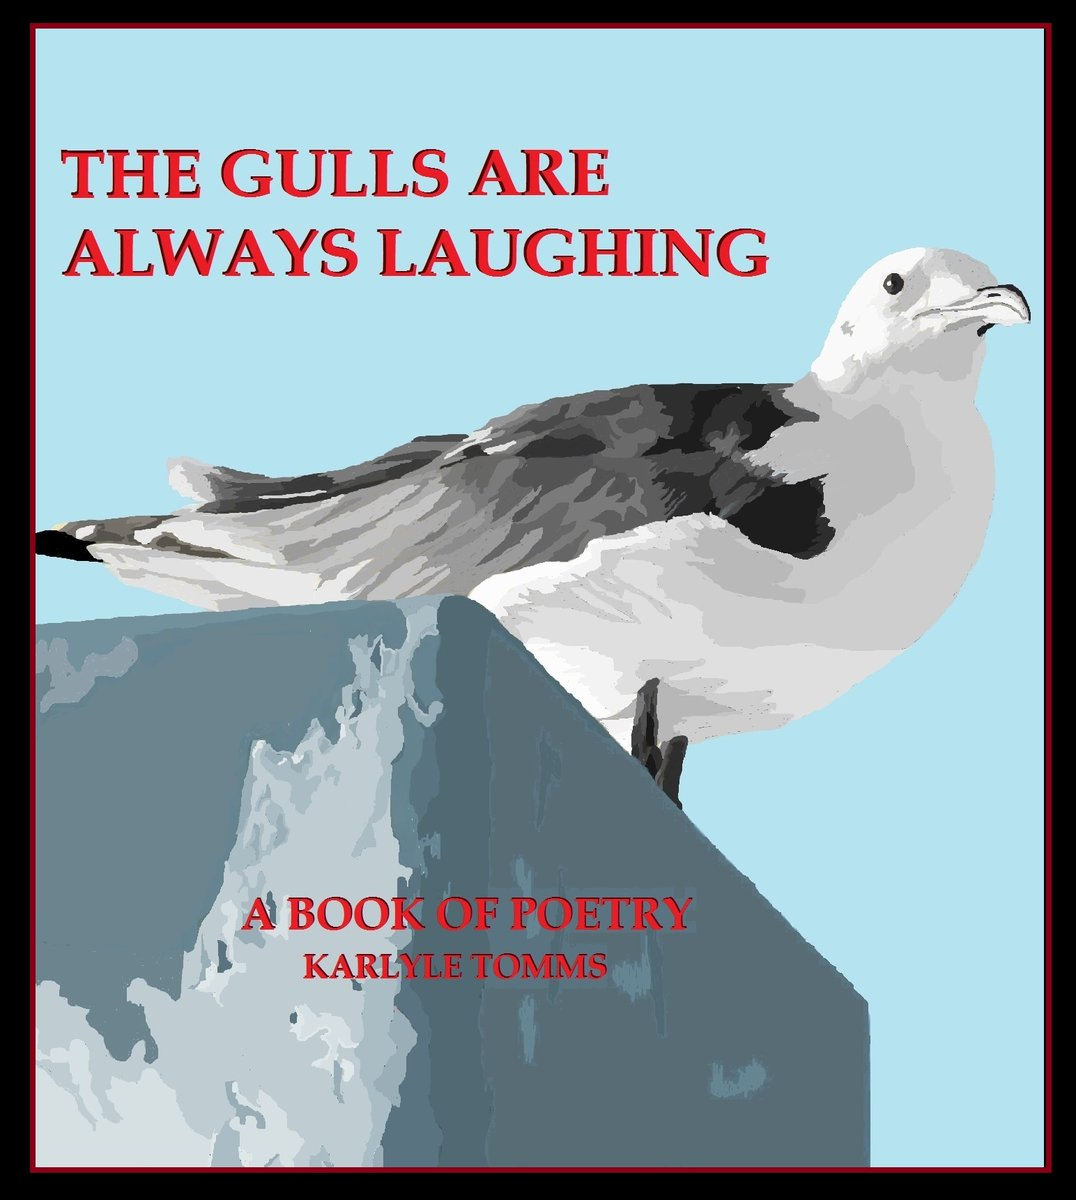 """""""A Lifetime, So Far, in Poetry""""  #spiritualawareness #followyourbliss https://www.amazon.com/Gulls-Are-Always-Laughing-Lifetime/dp/1982947292/ref=sr_1_2?s=books&ie=UTF8&qid=1531880681&sr=1-2&refinements=p_27%3AKarlyle+Tomms…pic.twitter.com/6xFlbD1wBg"""